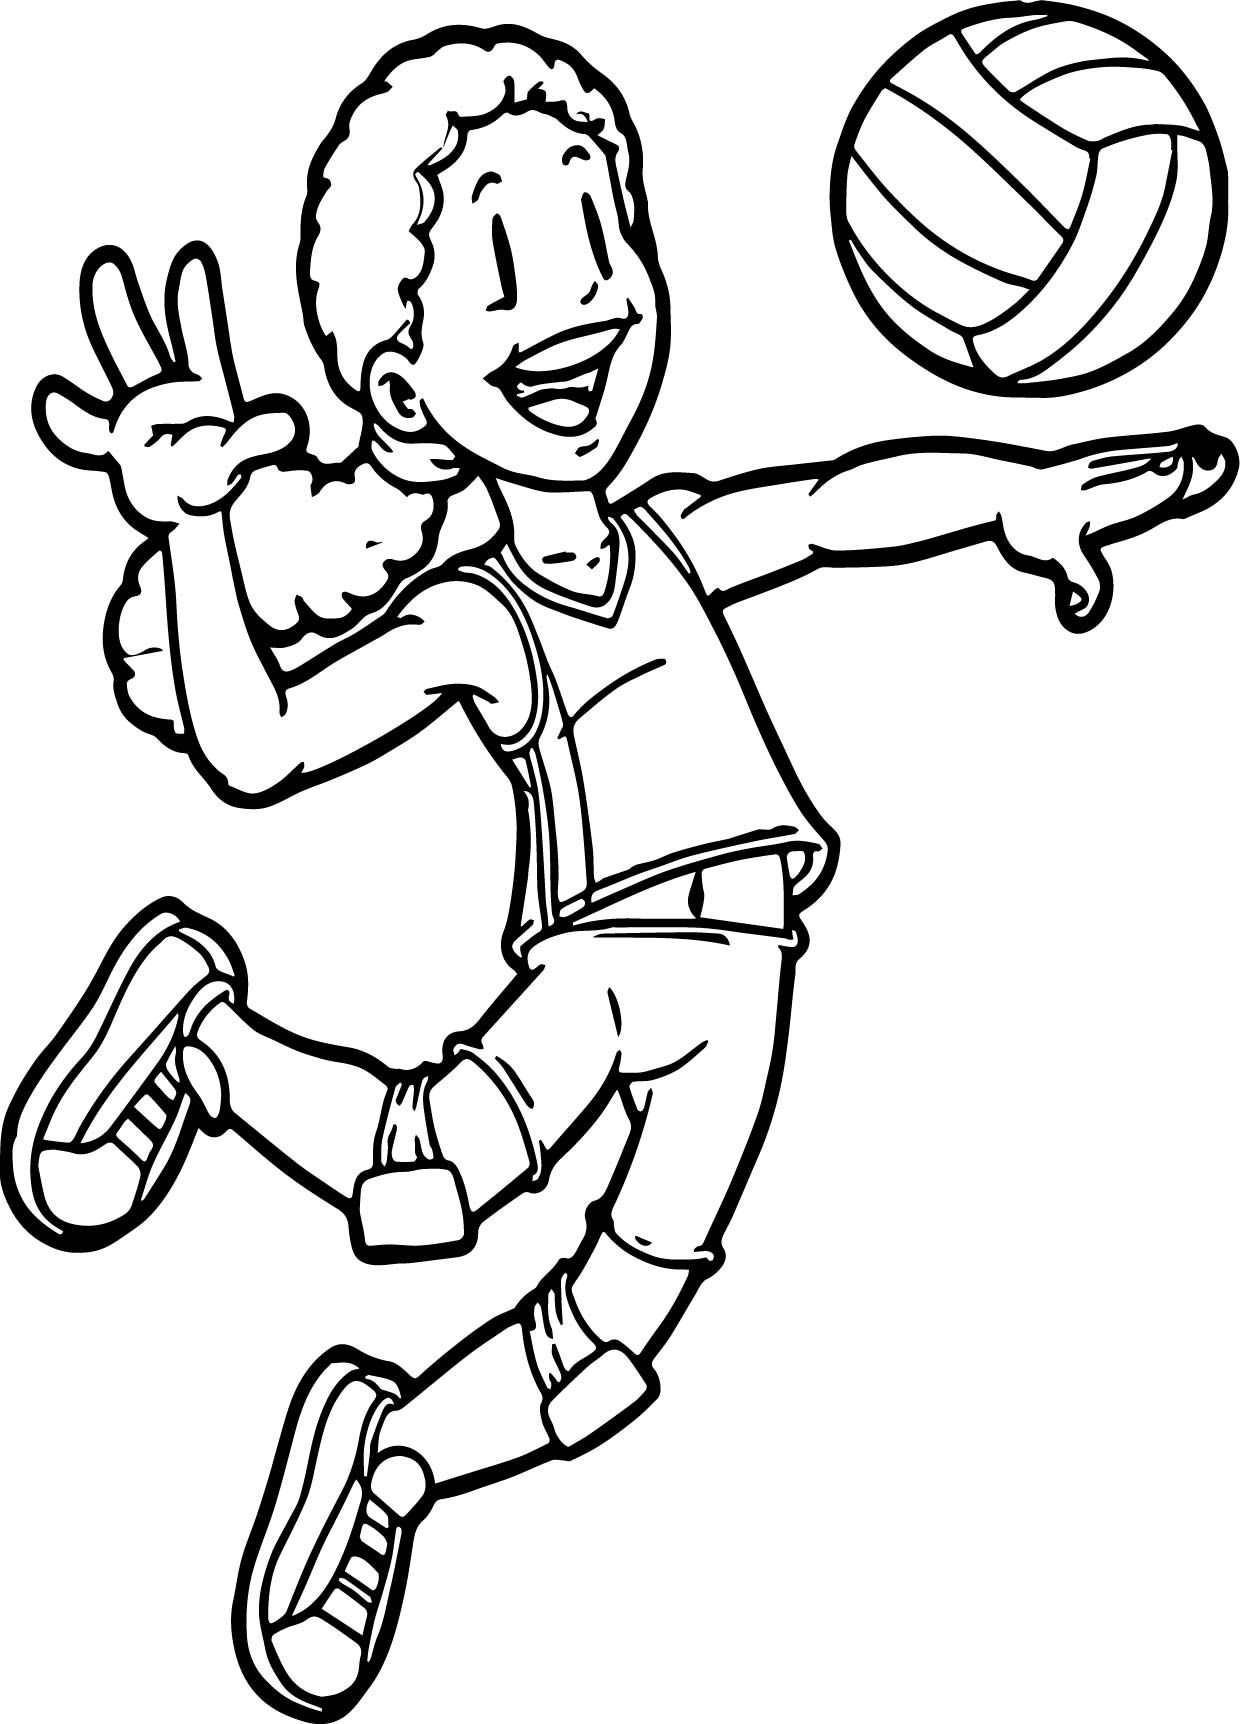 Awesome Kids Playing Sports Volleyball Coloring Page Sports Coloring Pages Baseball Coloring Pages Coloring Pages For Kids